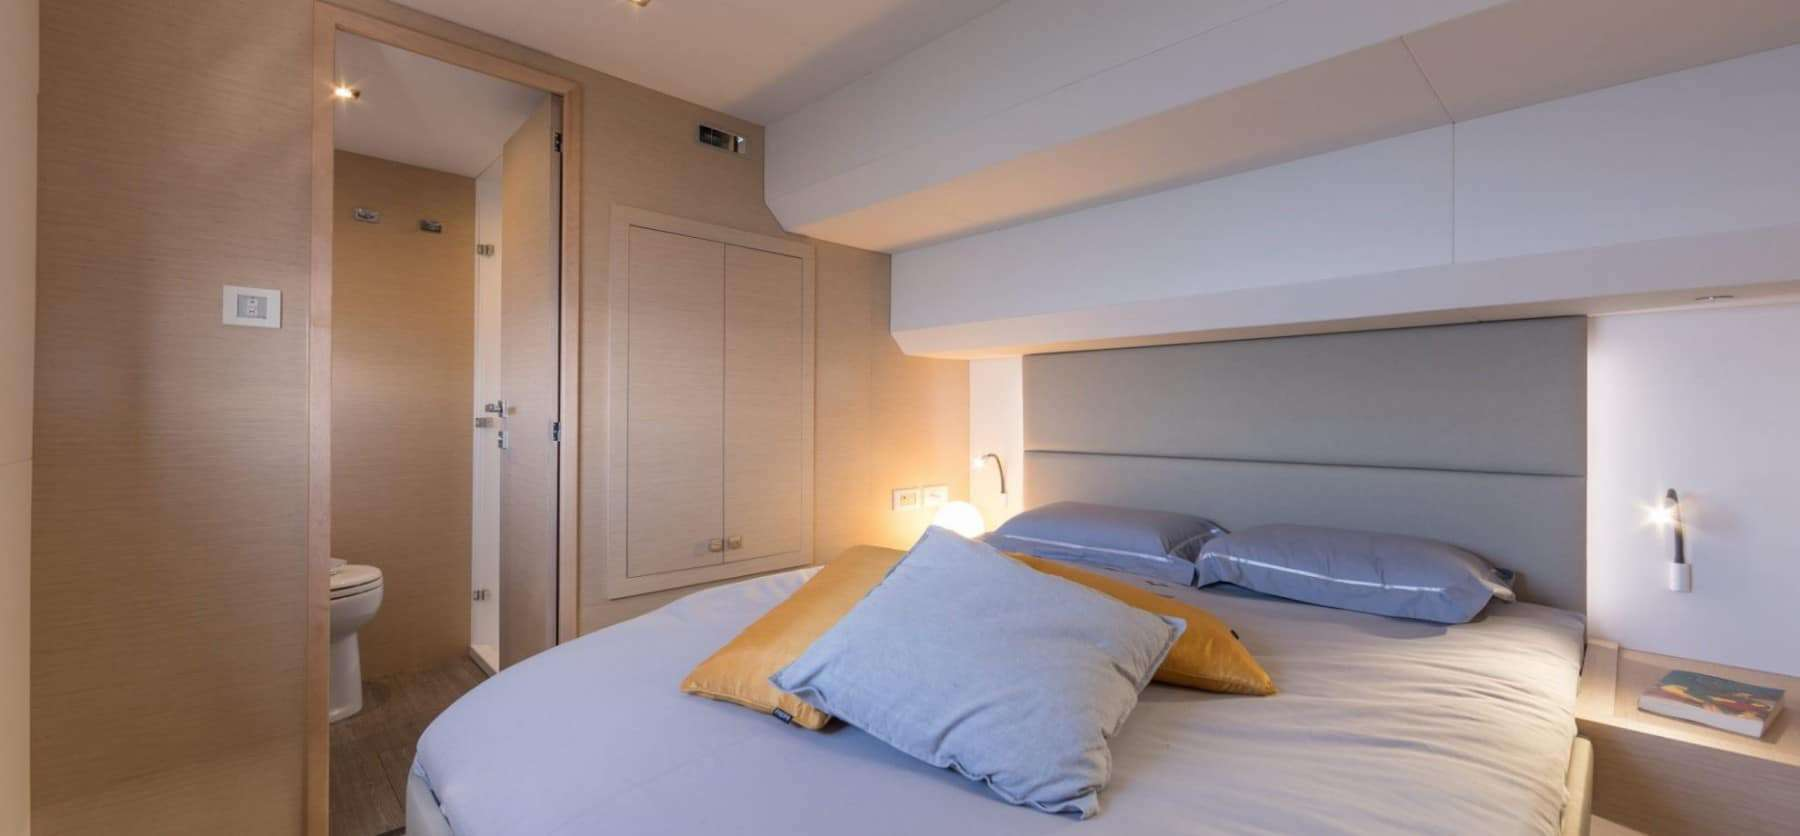 One of the light and cozy cabins within the Fountaine Pajot Motor Yacht 44